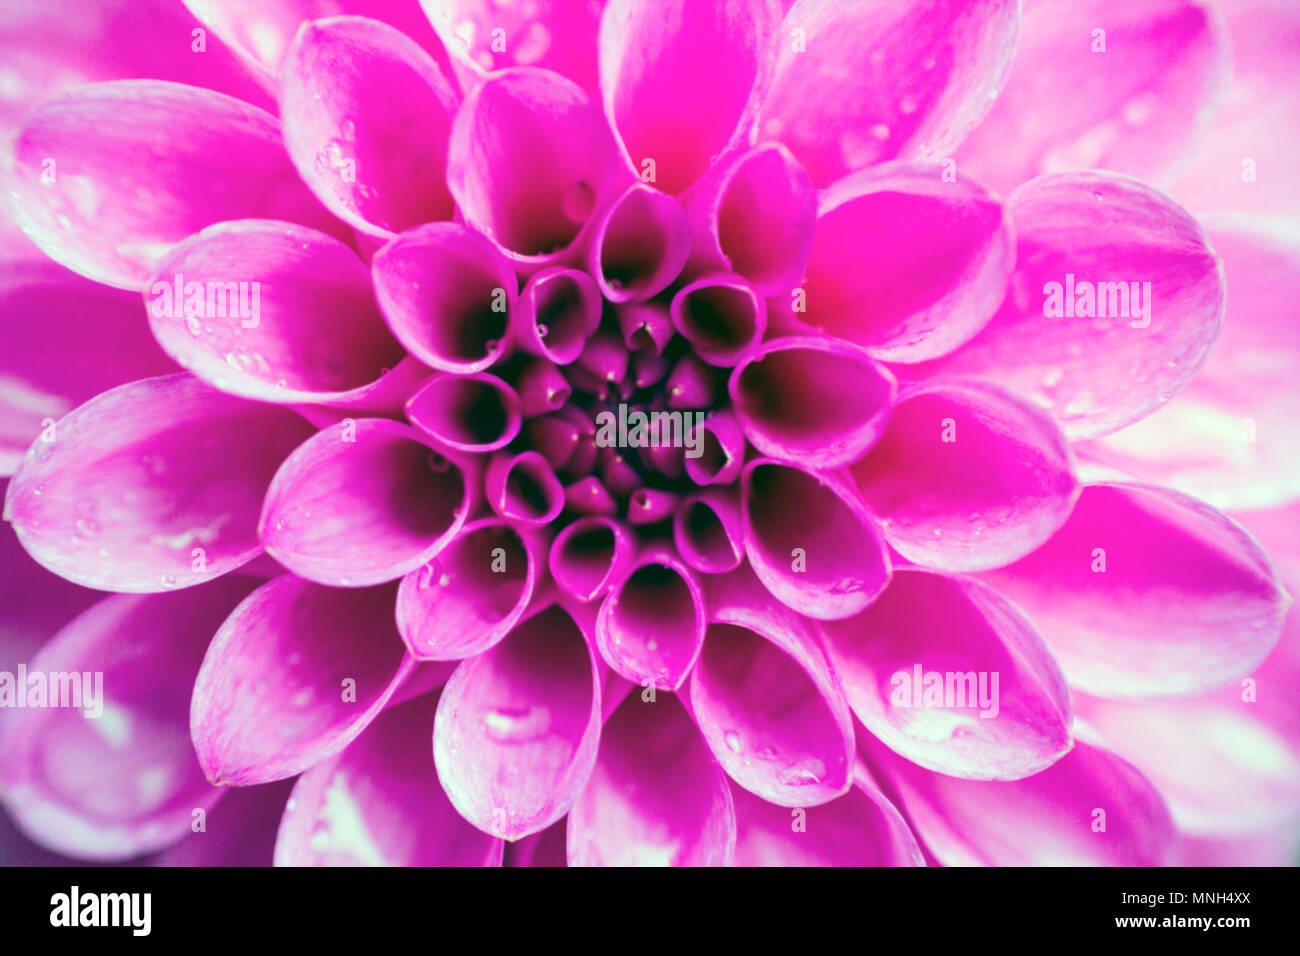 Blurred background pink flower dahlia top view pompon dahlias blurred background pink flower dahlia top view pompon dahlias flowers pattern pastel colors izmirmasajfo